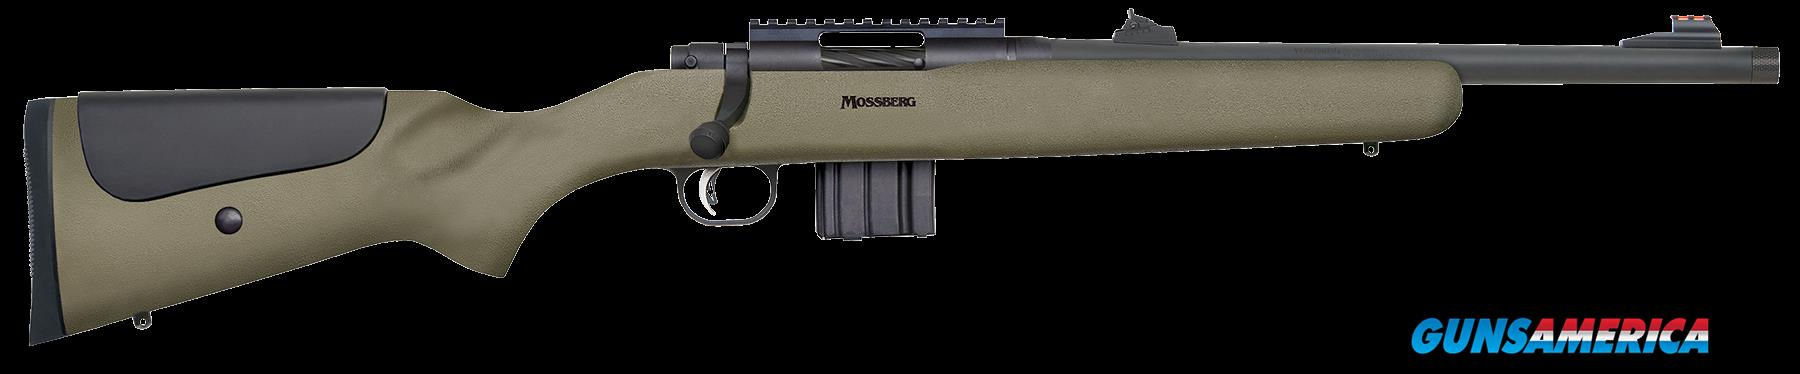 "Mossberg 27698 MVP LR Tactical Bolt 223 Remington/5.56 NATO 16.25"" 10+1 Synthetic Green Stk Blued  Guns > Rifles > MN Misc Rifles"